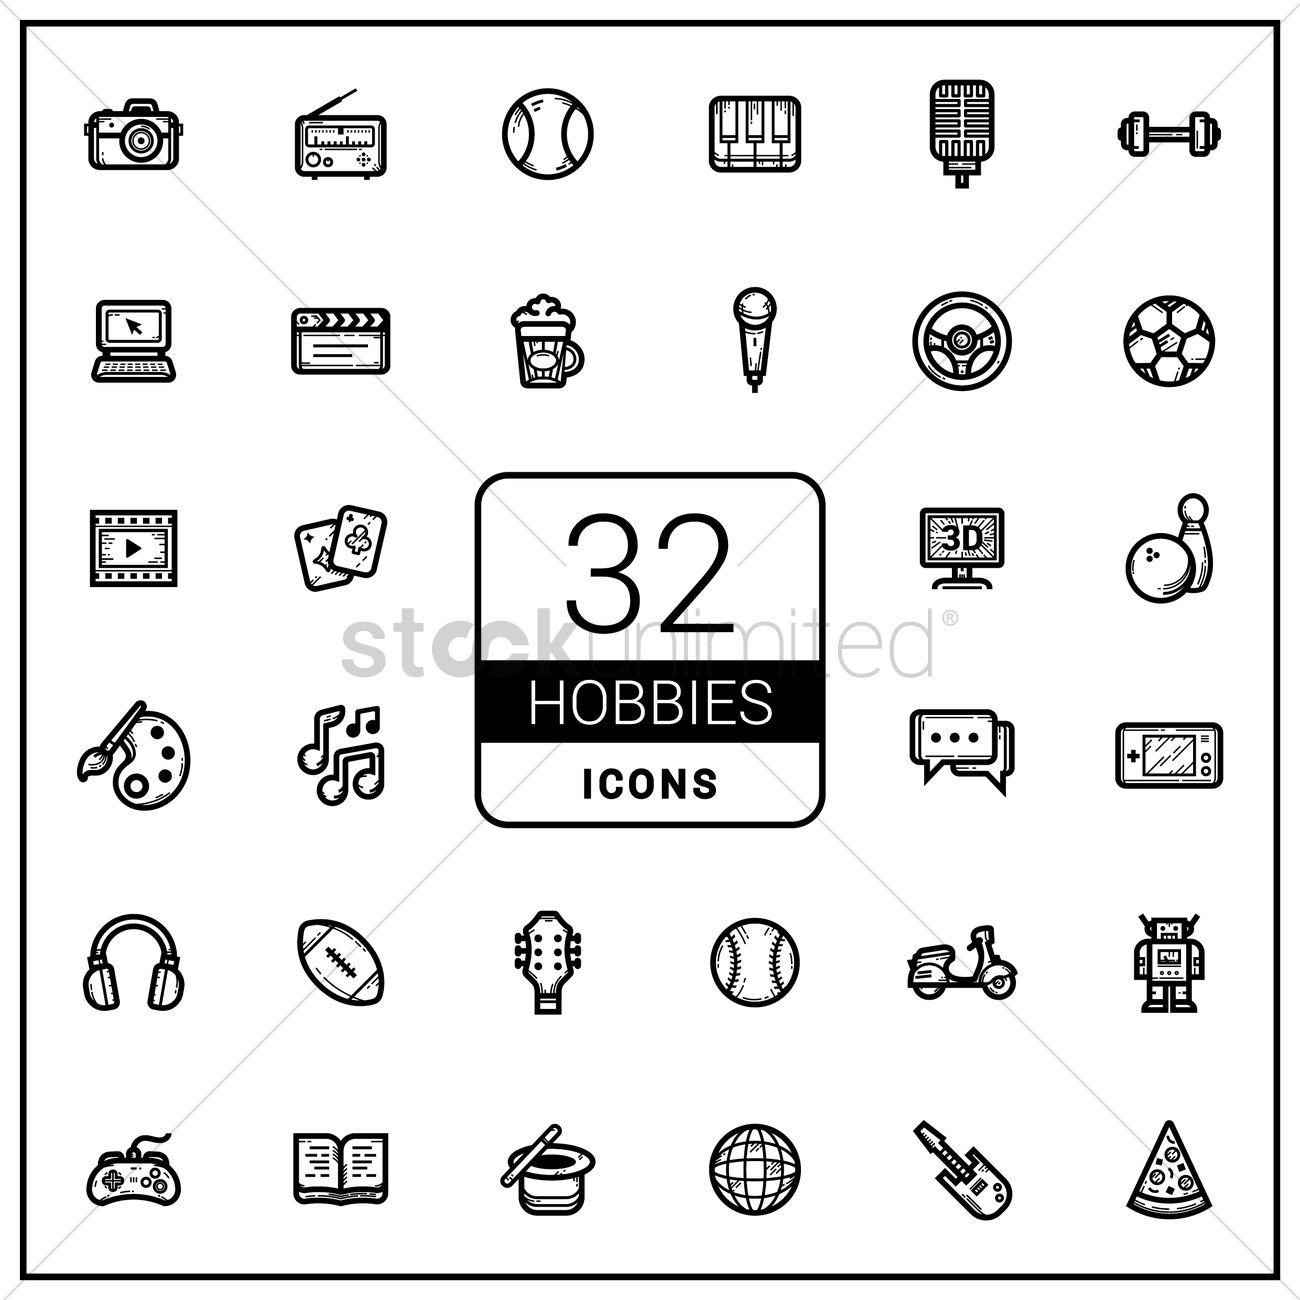 set-of-hobby-icons_1765588.jpg